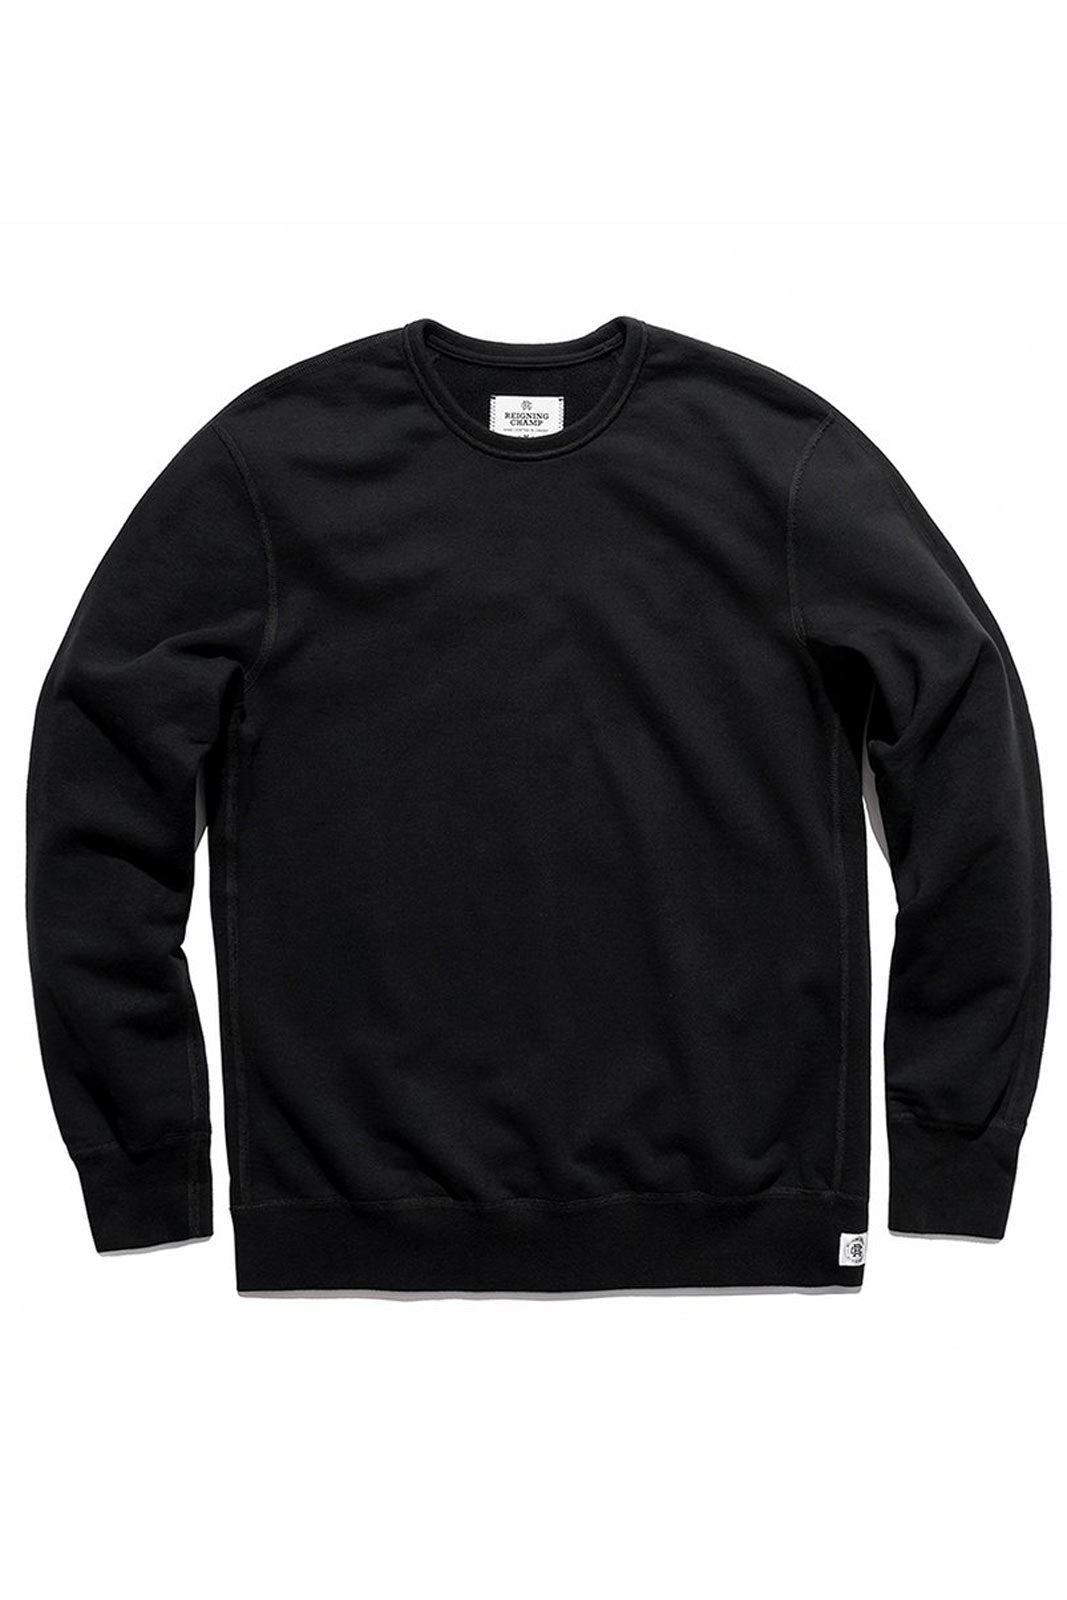 Reigning Champ Classic Crewneck Terry Black image 5 - The Sports Edit